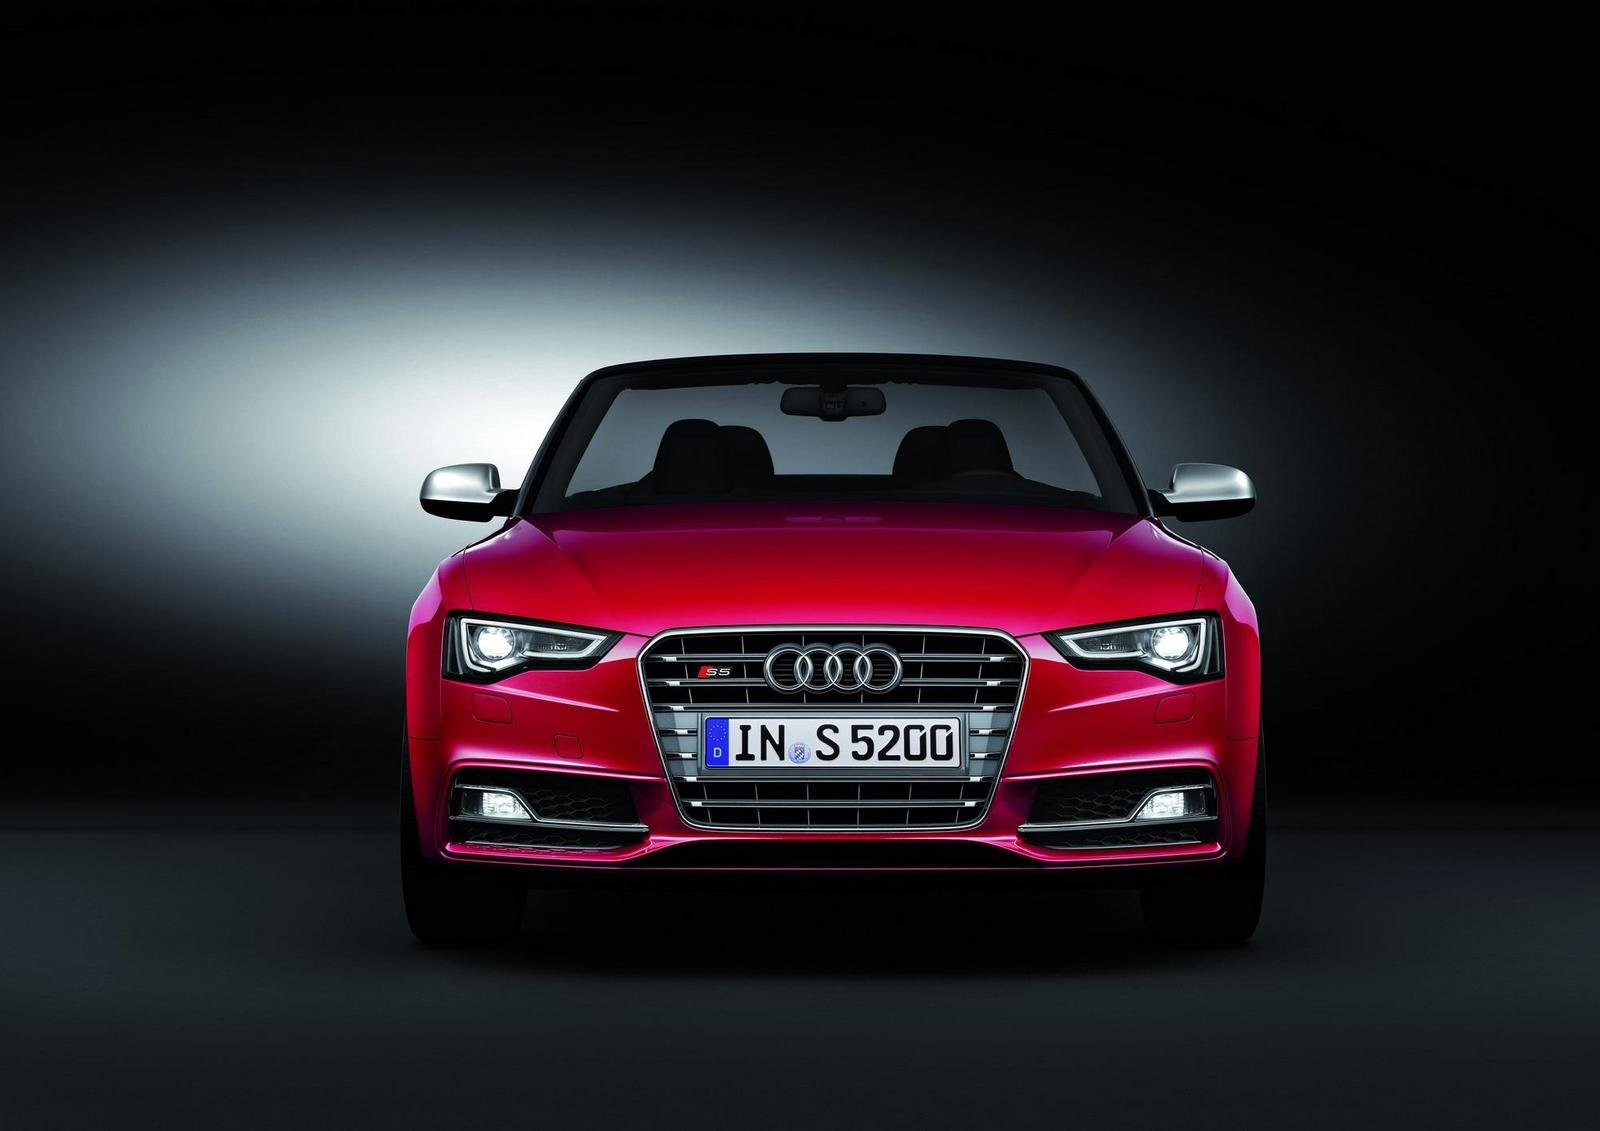 http://pictures.topspeed.com/IMG/crop/201107/audi-s5-convertible-13_1600x0w.jpg